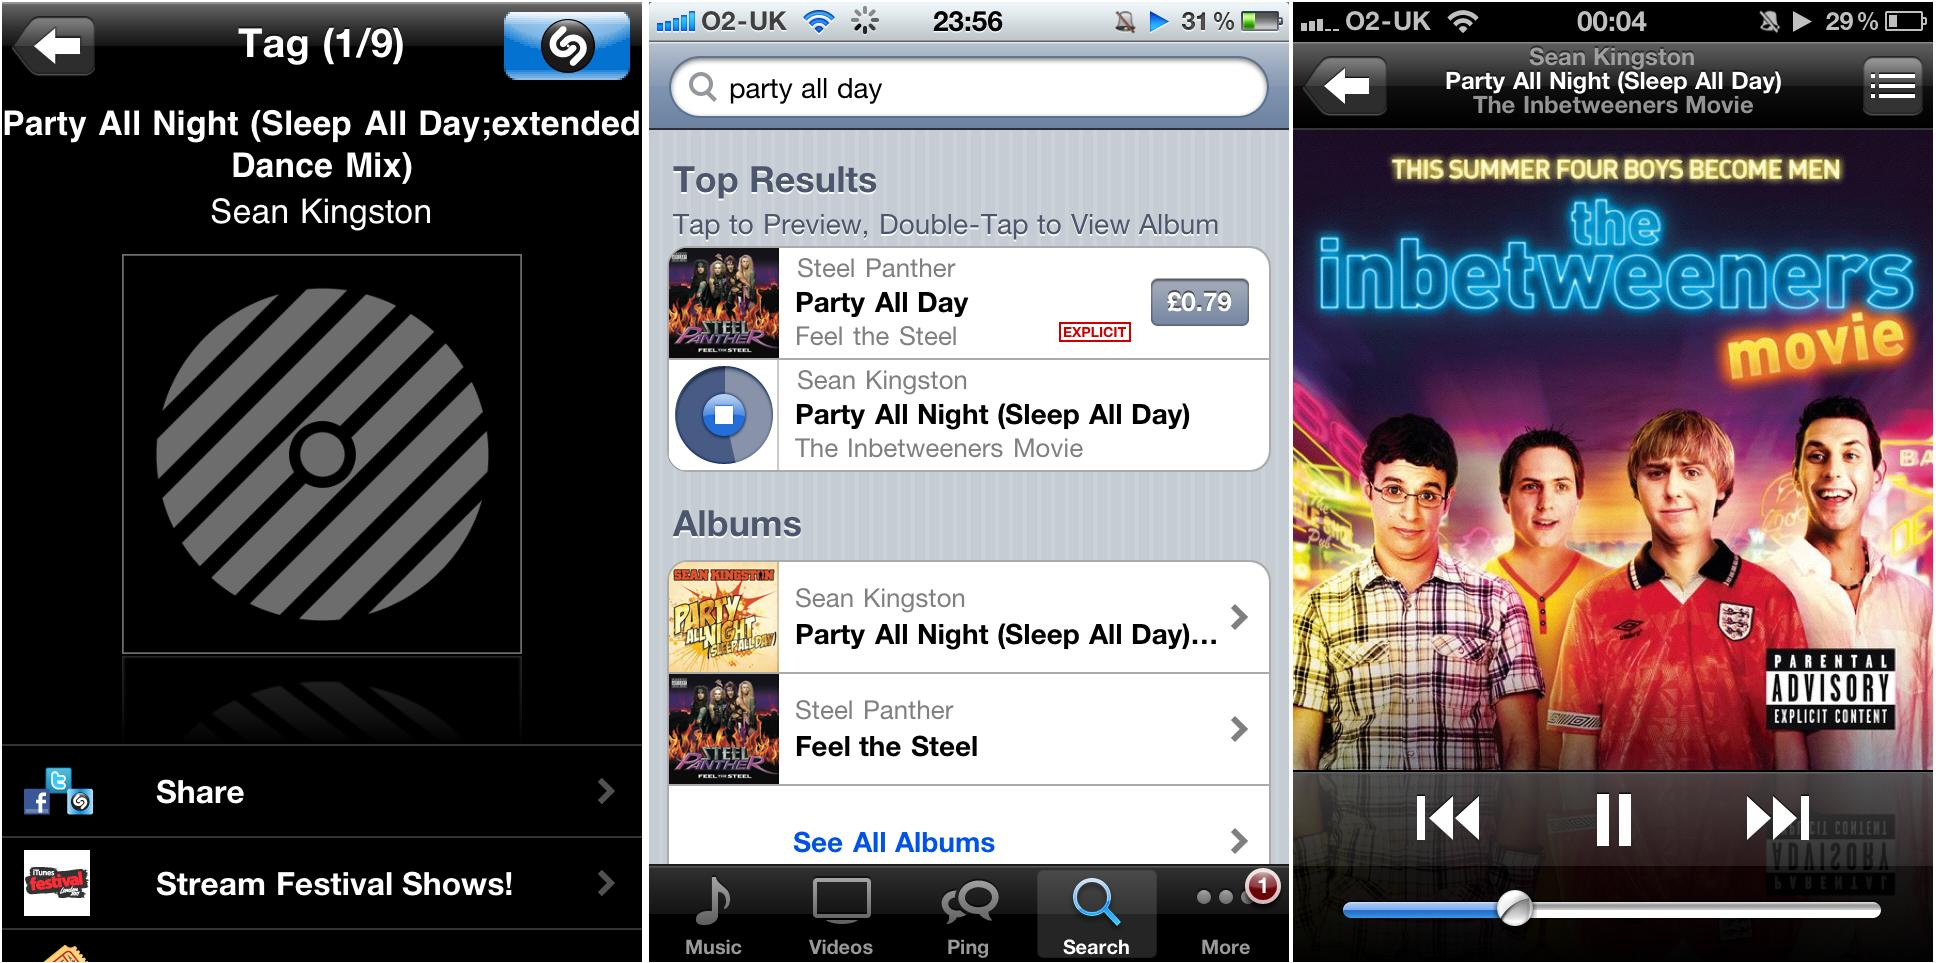 Music from The Inbetweeners Film via Shazam